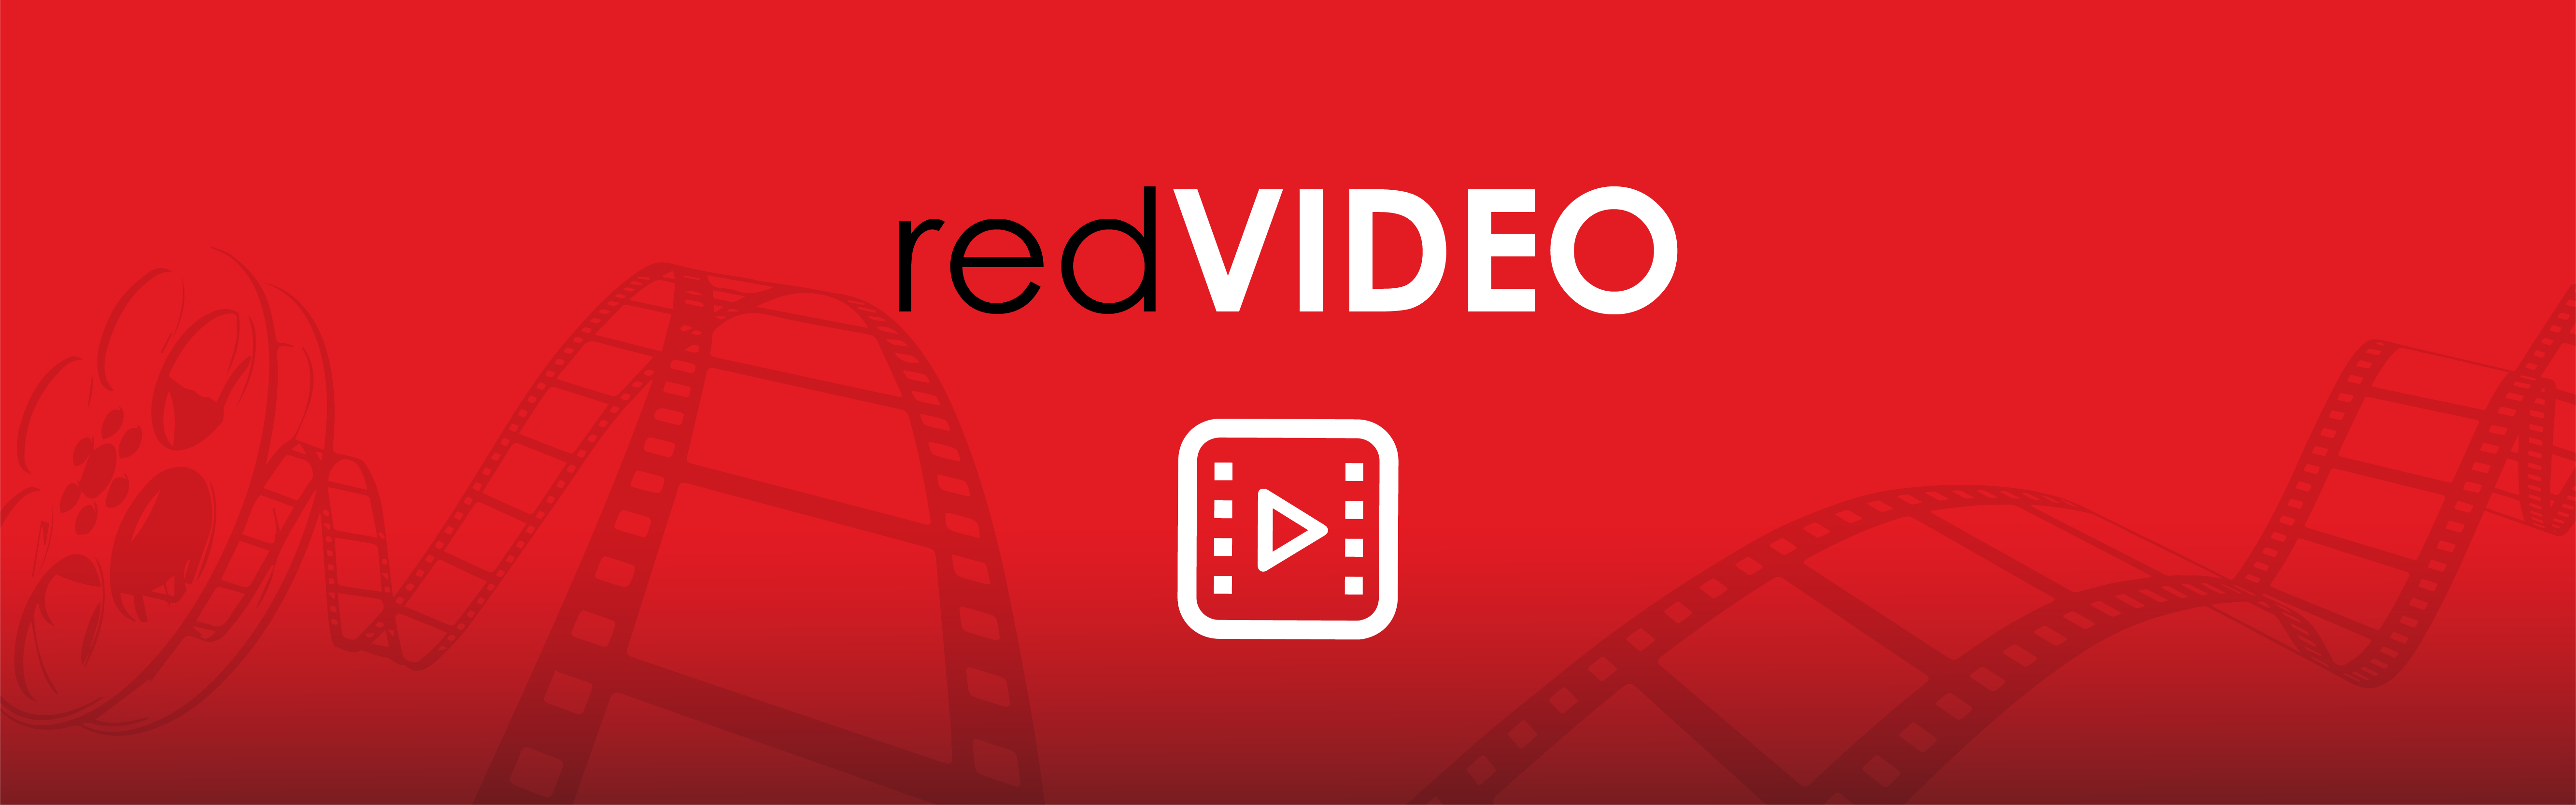 redONE POSTPAID redVIDEO, Available 24 hours a day.